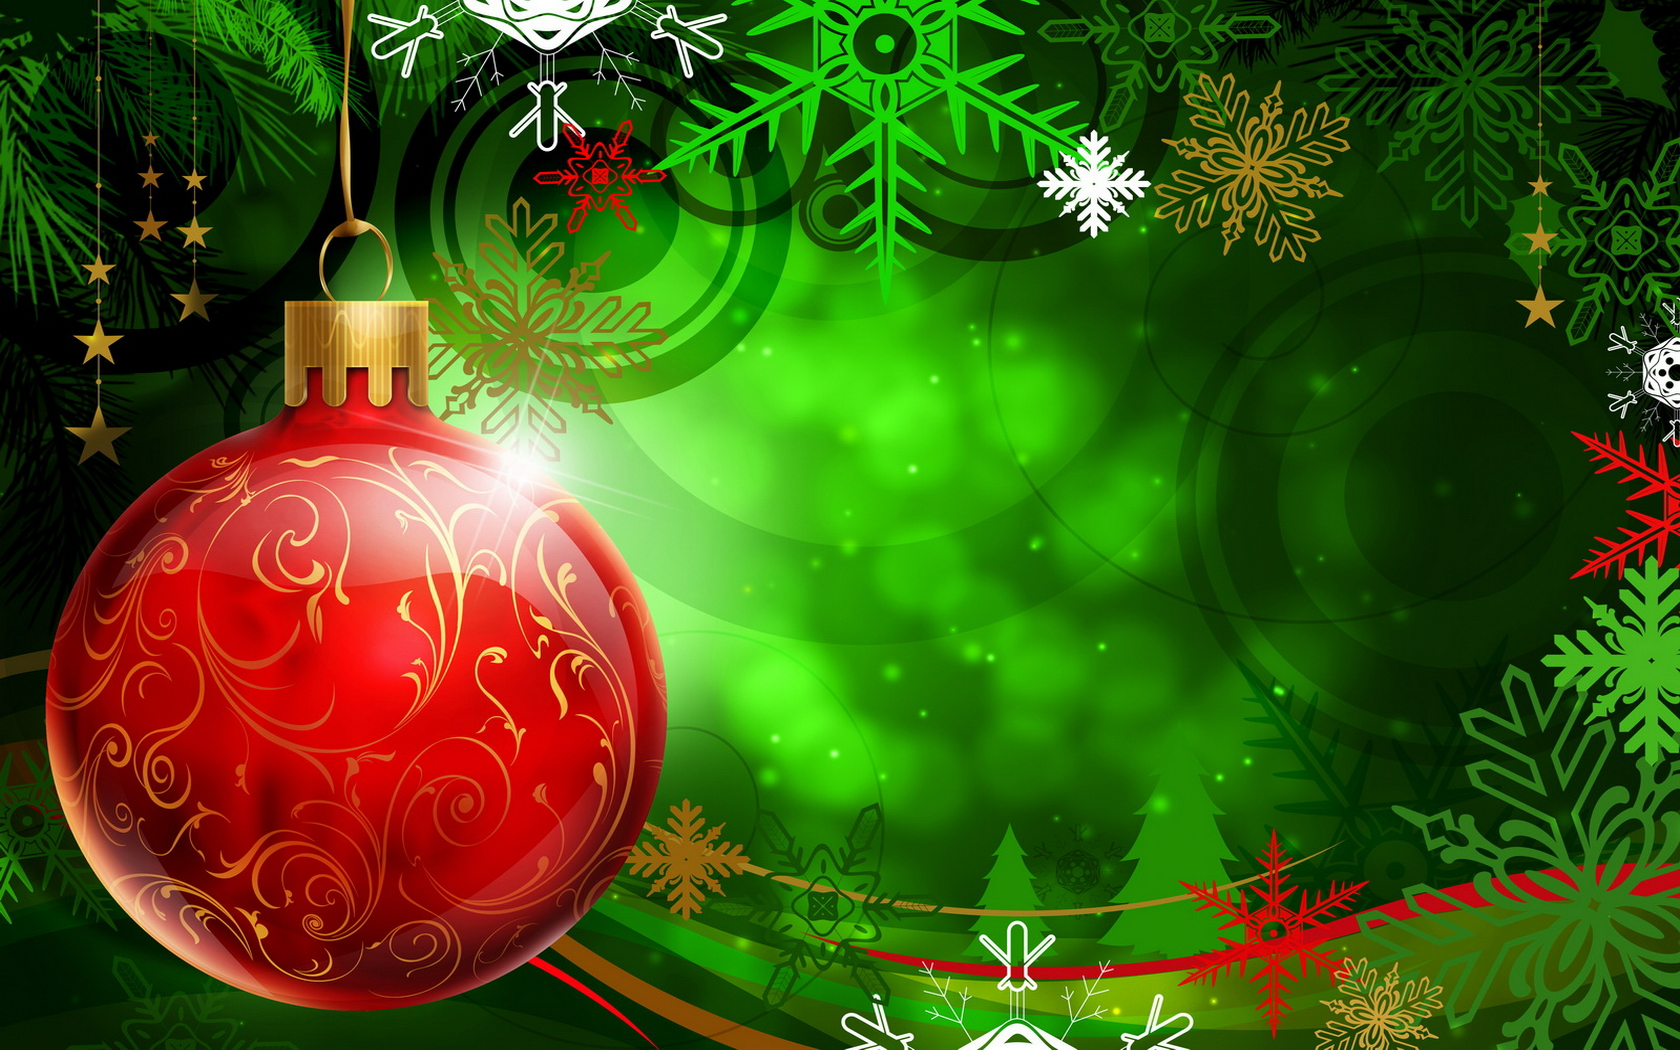 wallpaper android live christmas wallpaper android Desktop 1680x1050